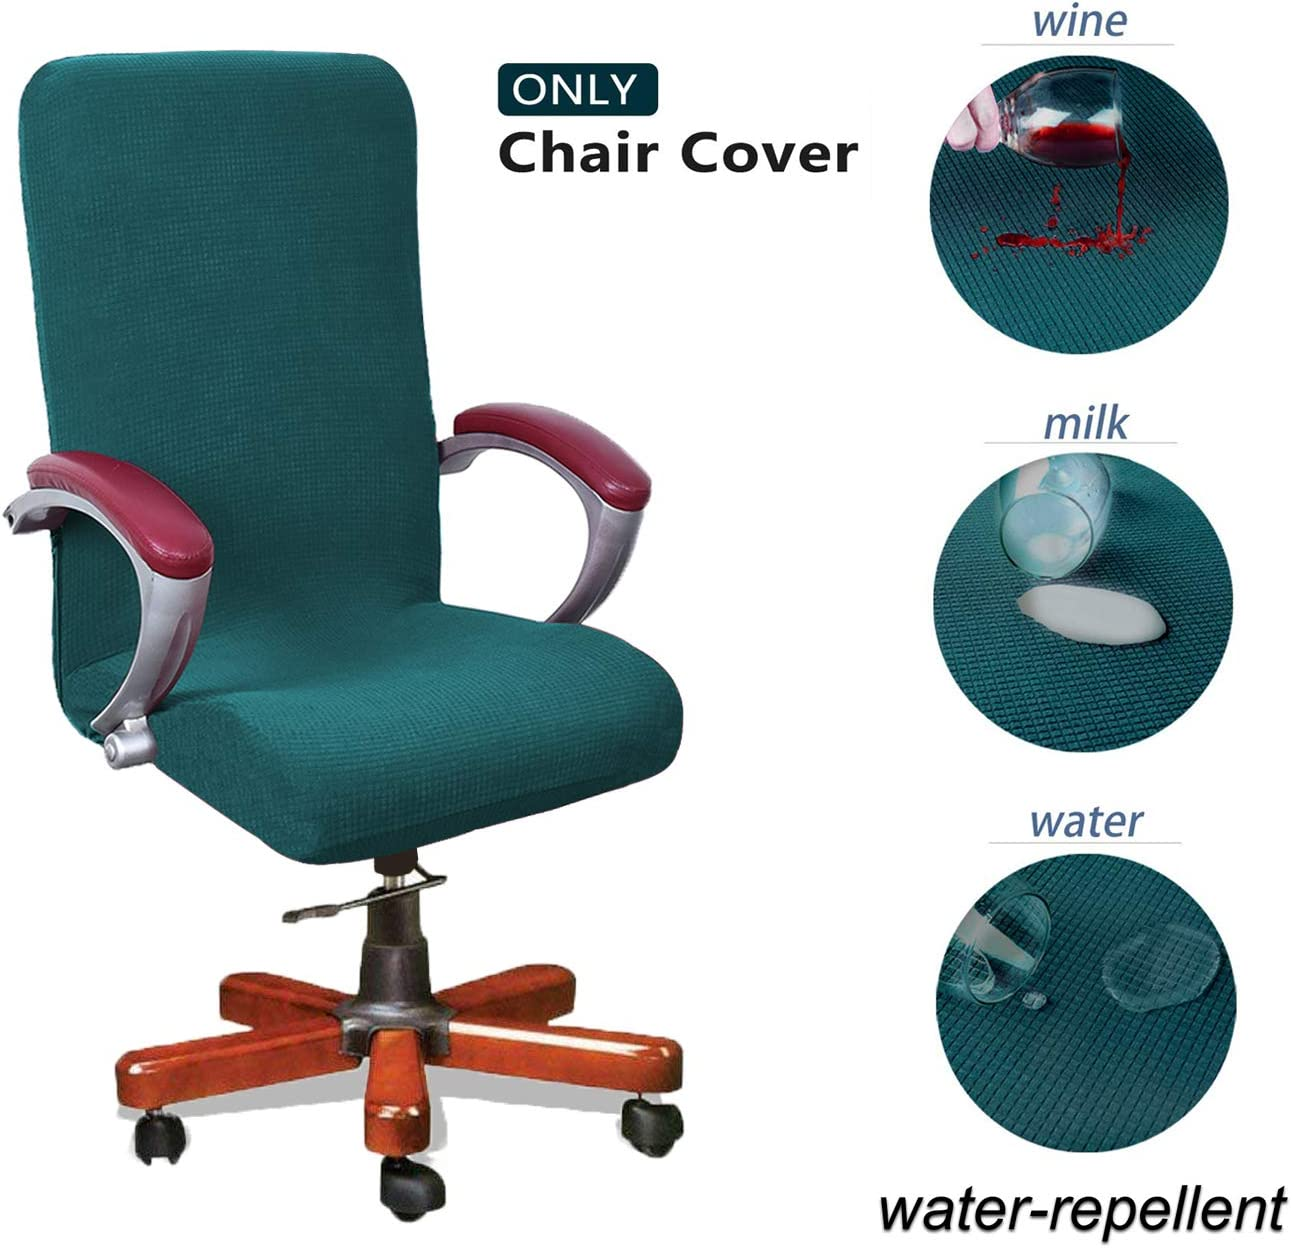 WOMACO Waterproof Office Chair Cover, Computer Office Chair Covers Water-Repellent Universal Boss Chair Covers Modern Simplism Style High Back Chair Slipcover (Teal, Large)